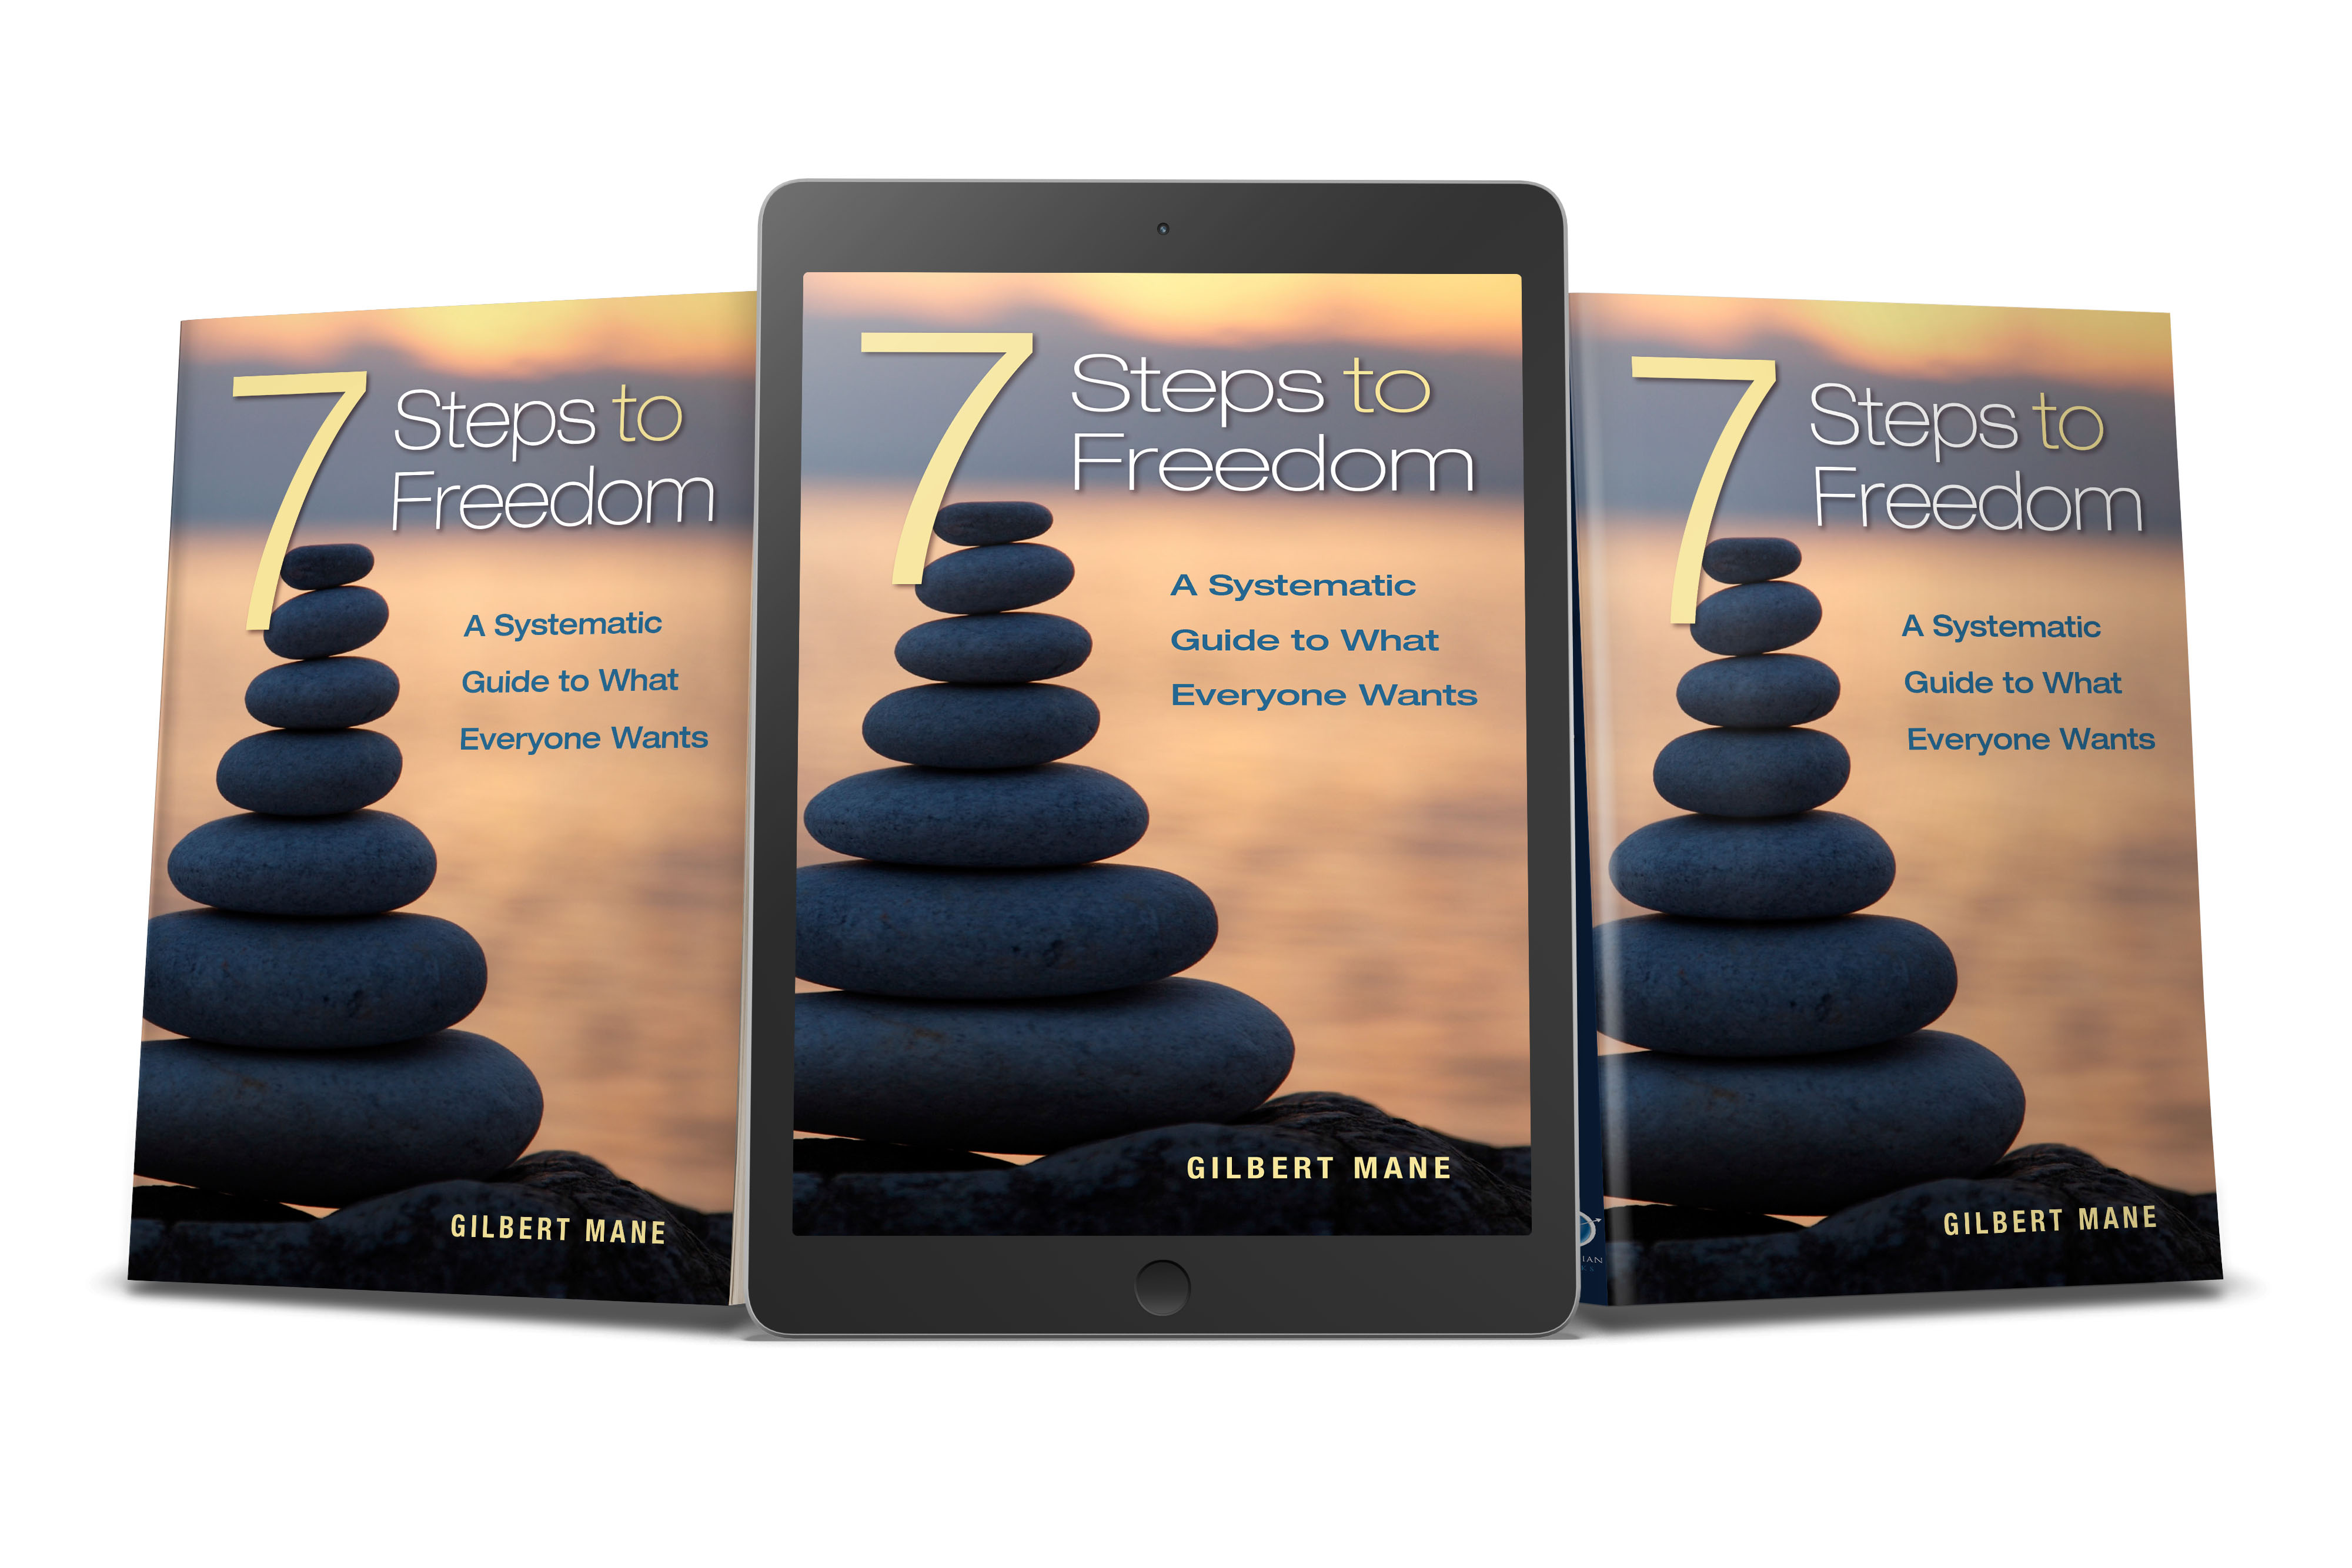 7 Steps to Freedom by Gilbert Mane